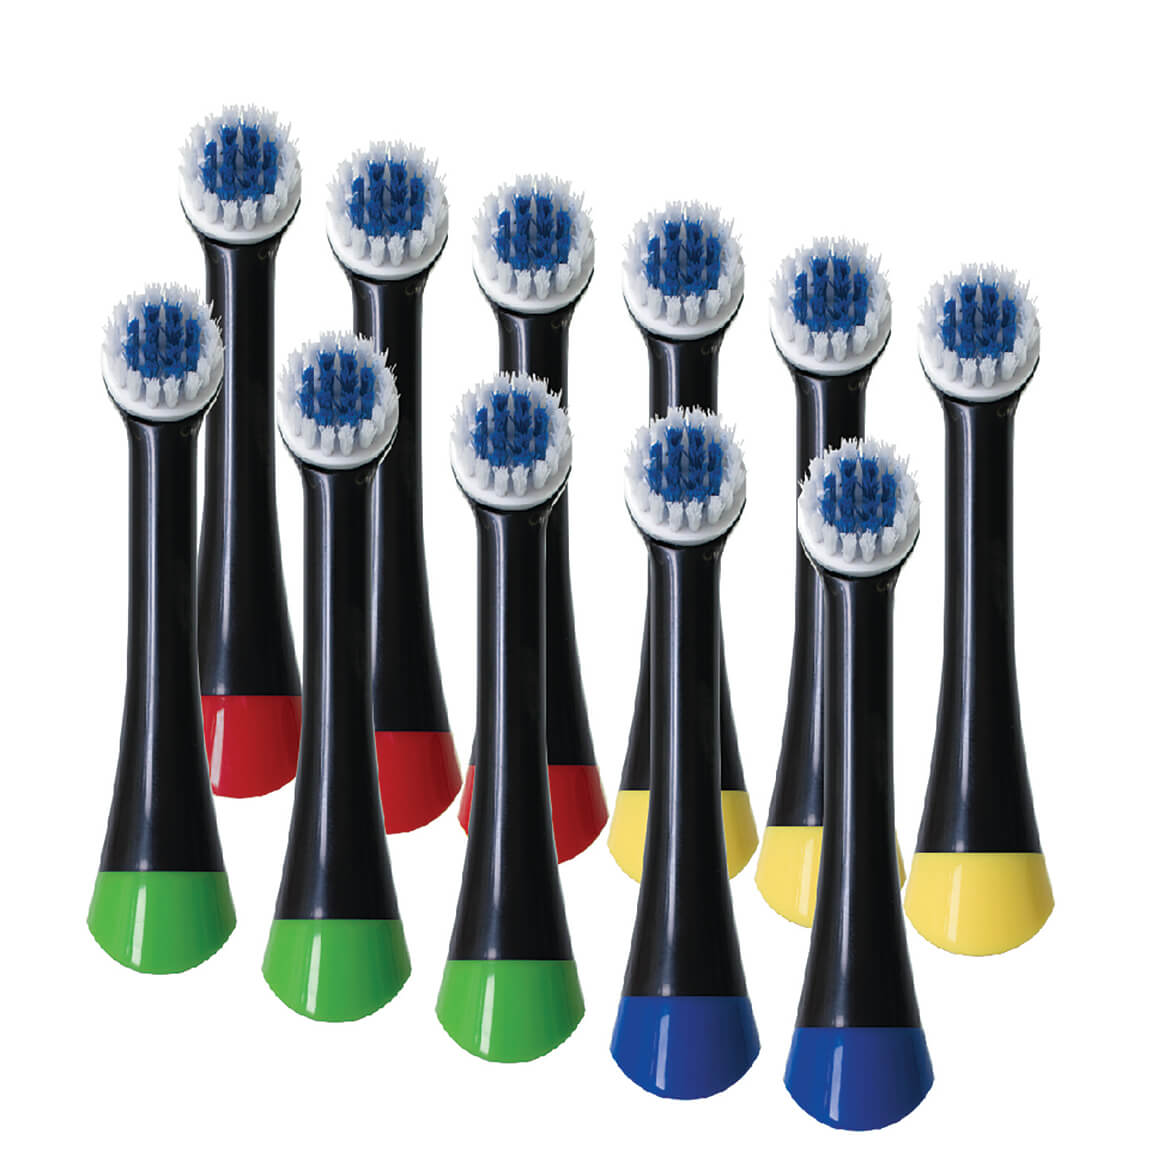 Rechargeable Rotary Toothbrush-369729